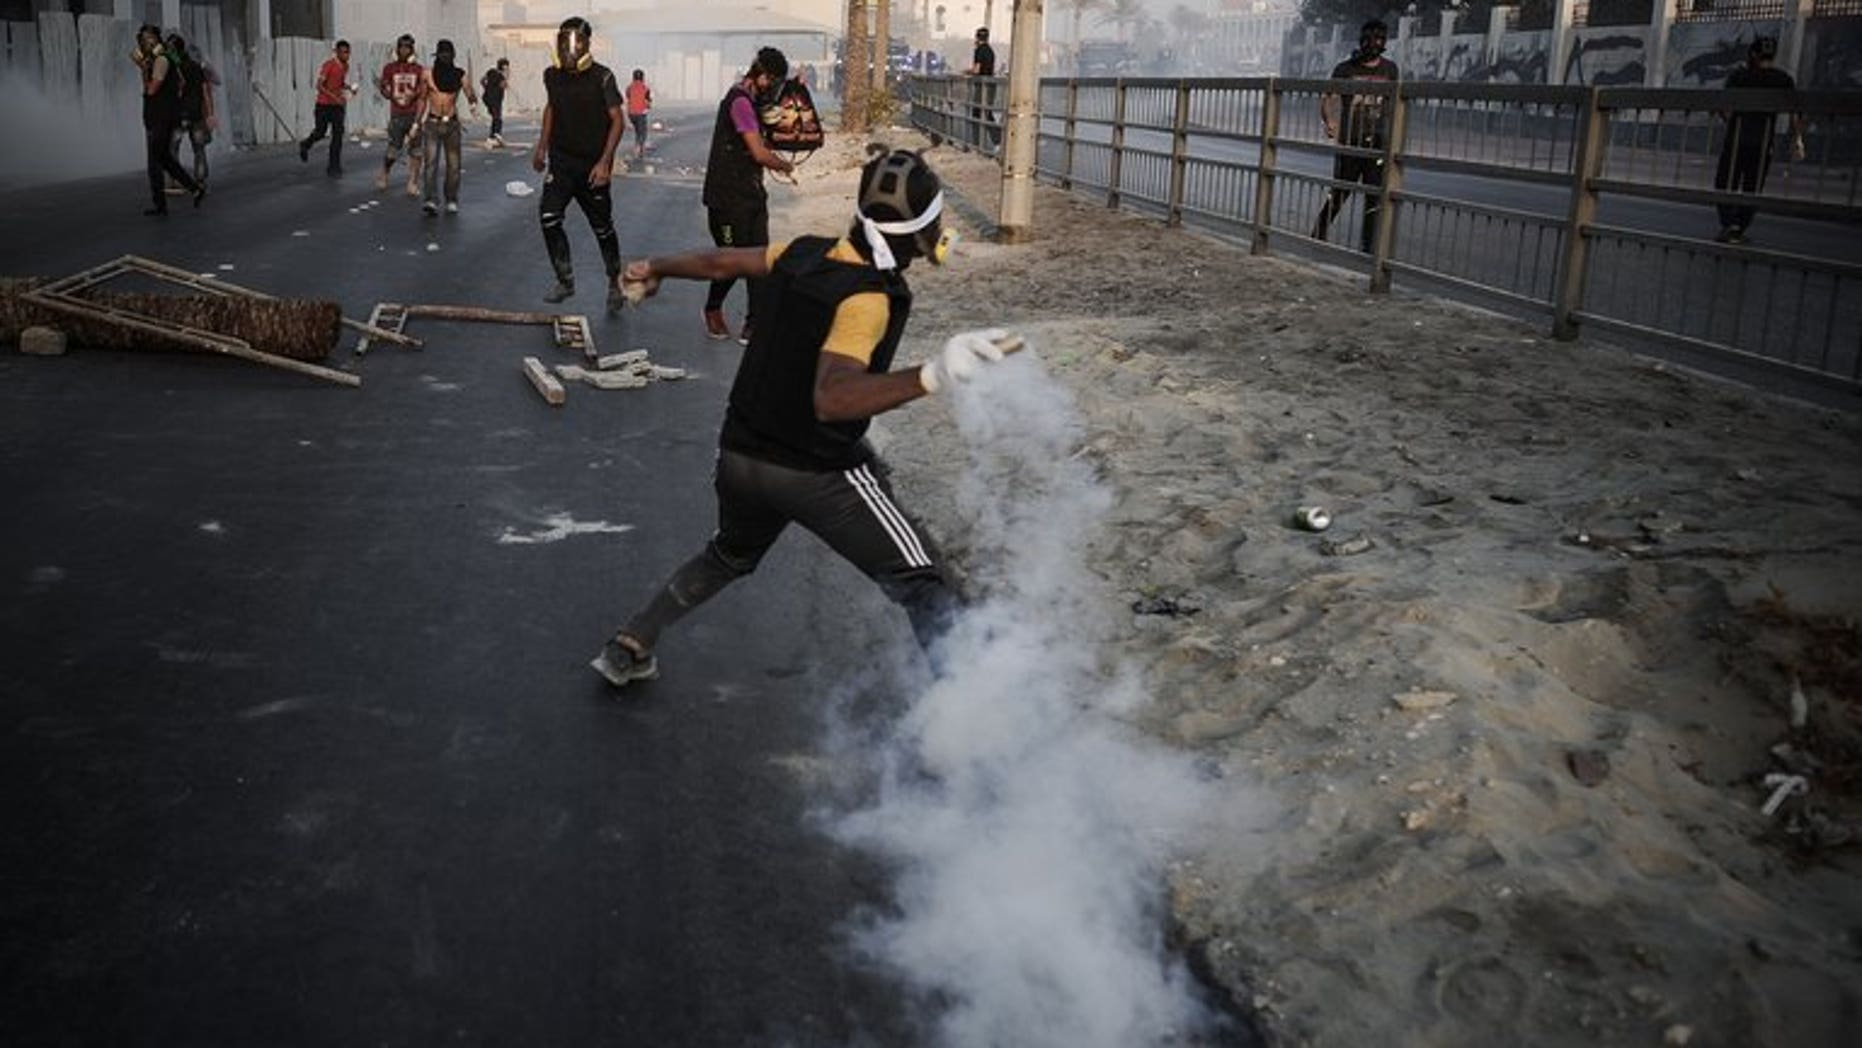 A Shiite protestor throws back a tear gas canister in the village of Daih, west of Manama, on Sunday. A Bahrain court on Thursday jailed five Shiites for periods up to 10 years after convicting them of attacking a government building with petrol bombs, a judicial source said.